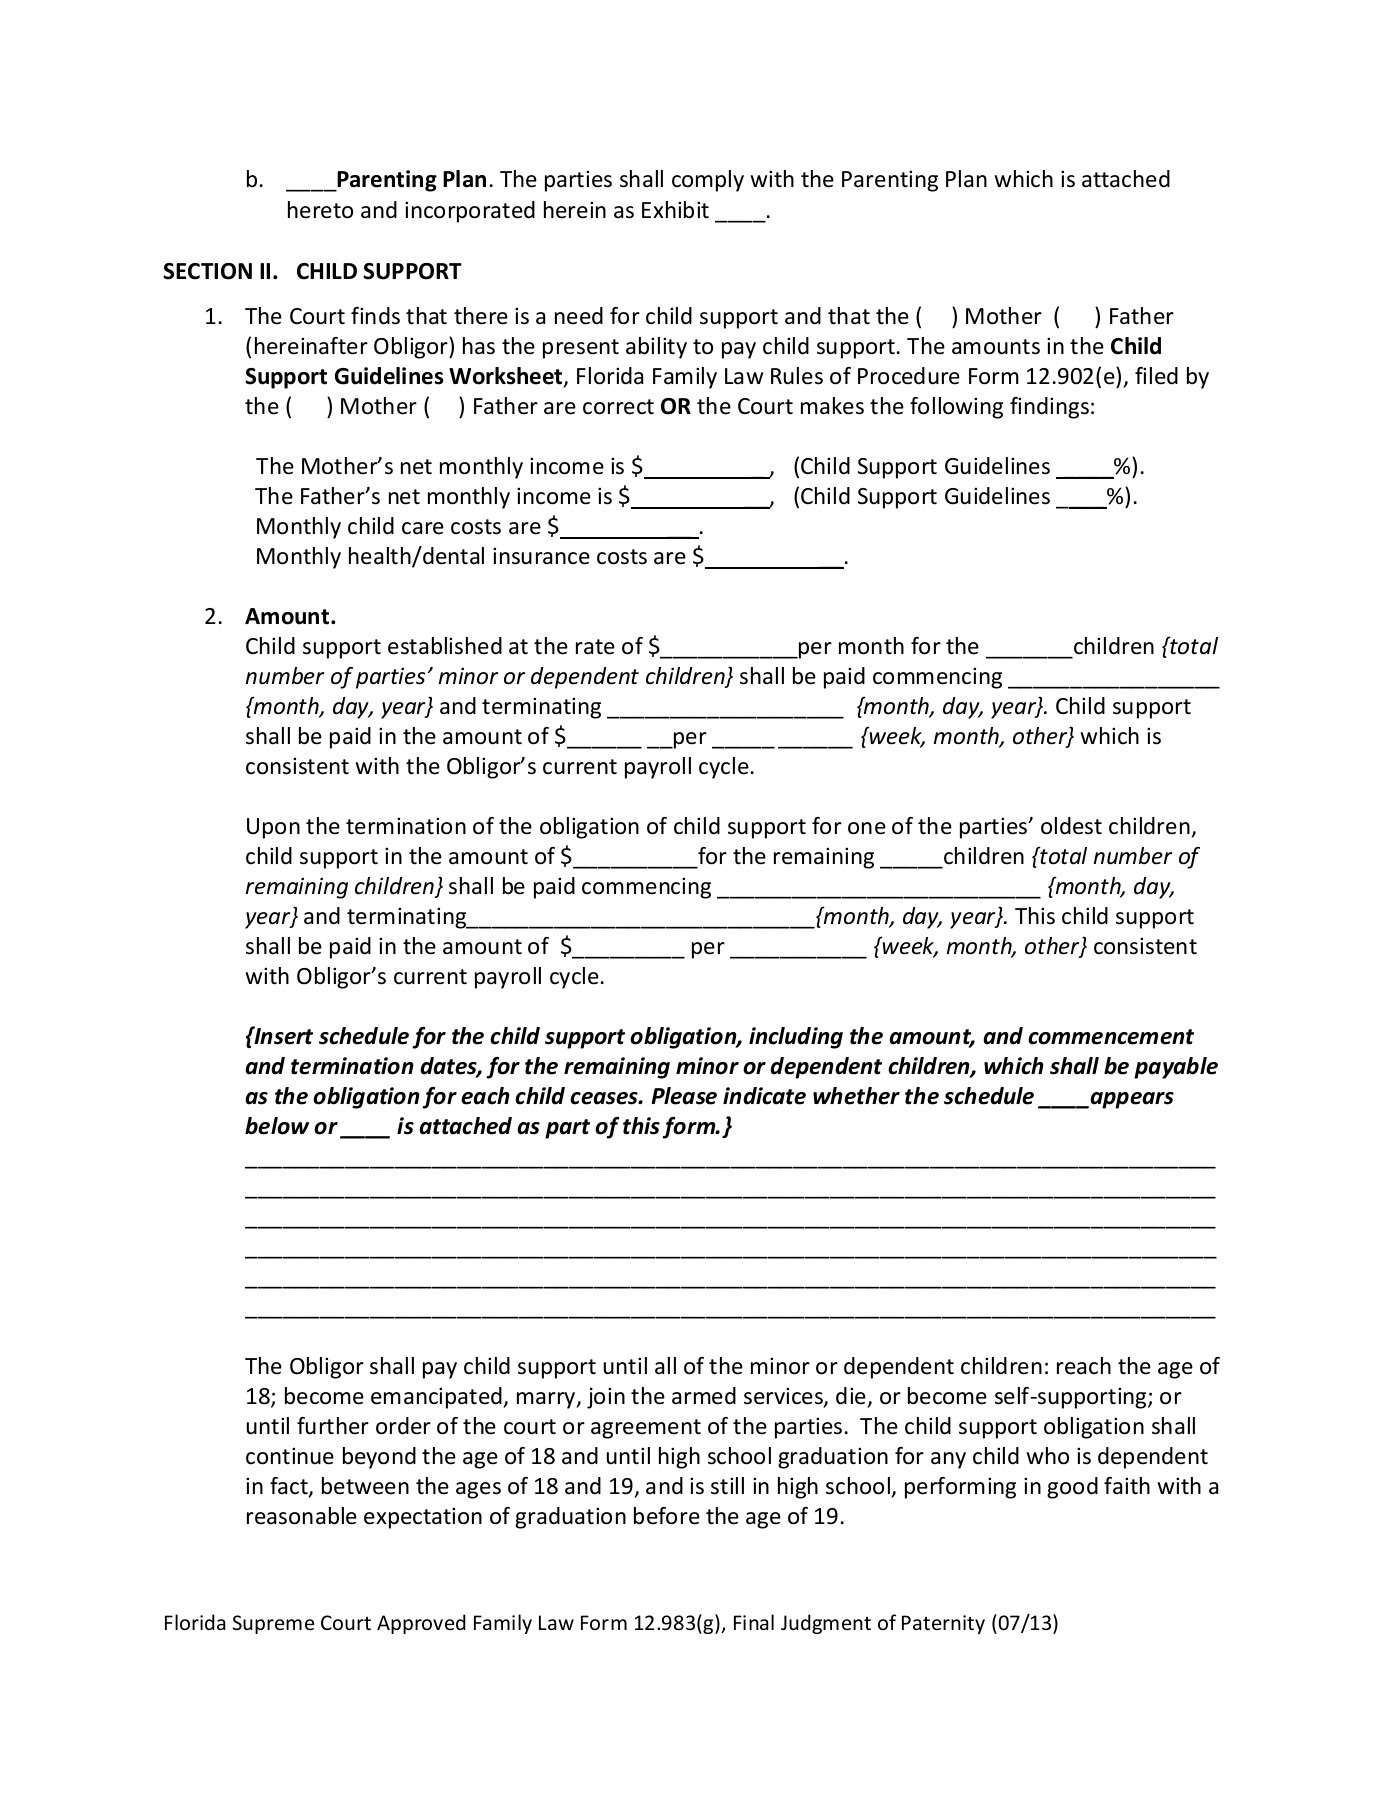 Child Support Guidelines Worksheet Florida